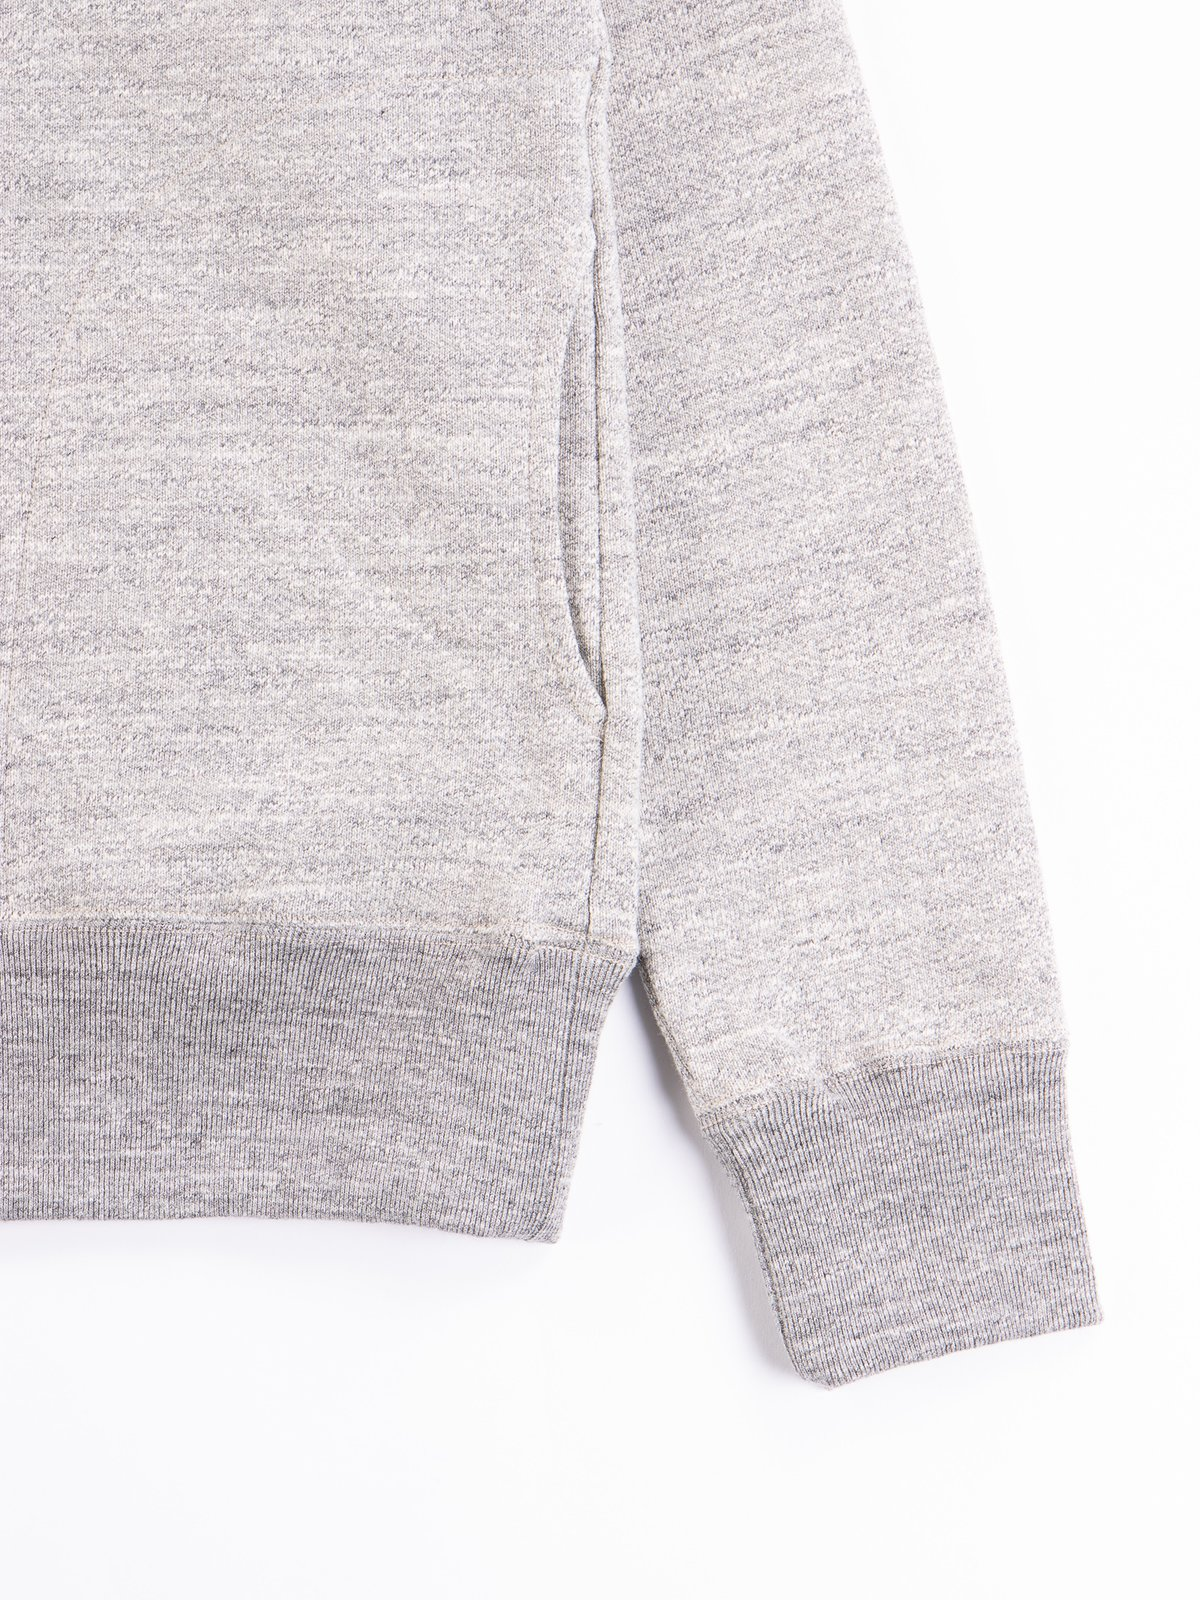 Heather Grey GG Sweat Pullover Parka - Image 4